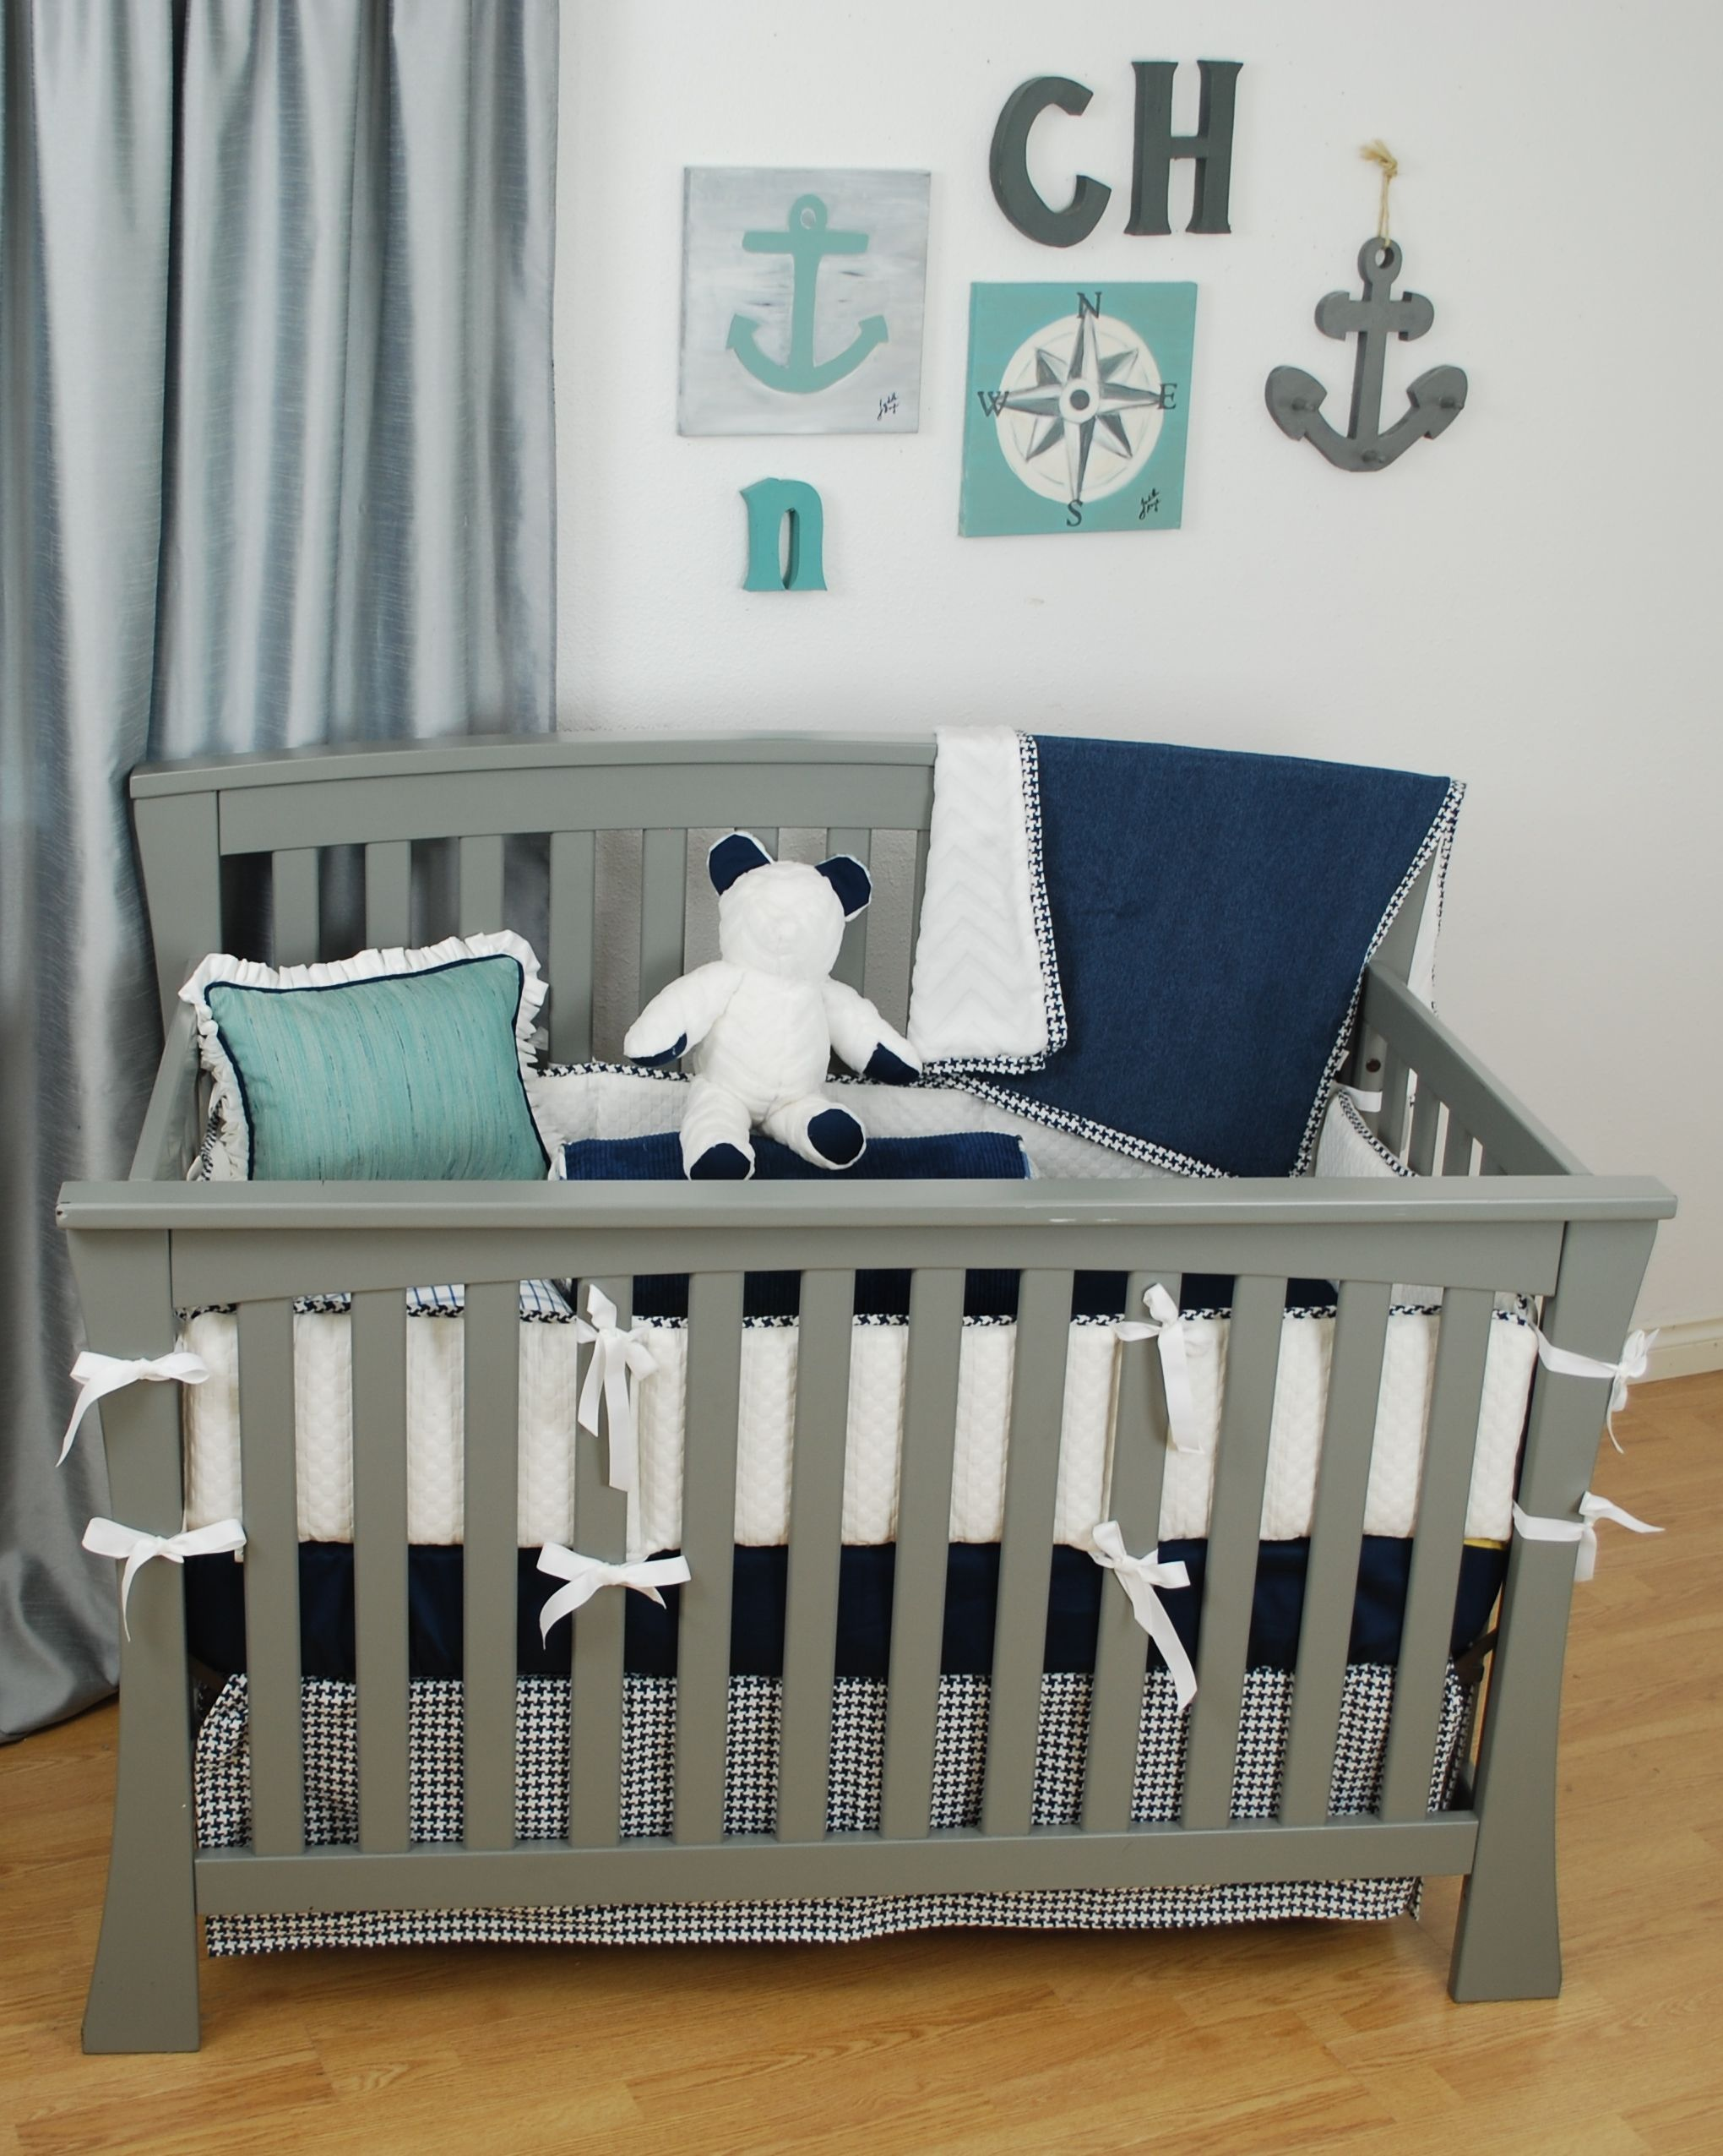 White And Navy Crib Bedding With Aqua And Grey Fabrics For A